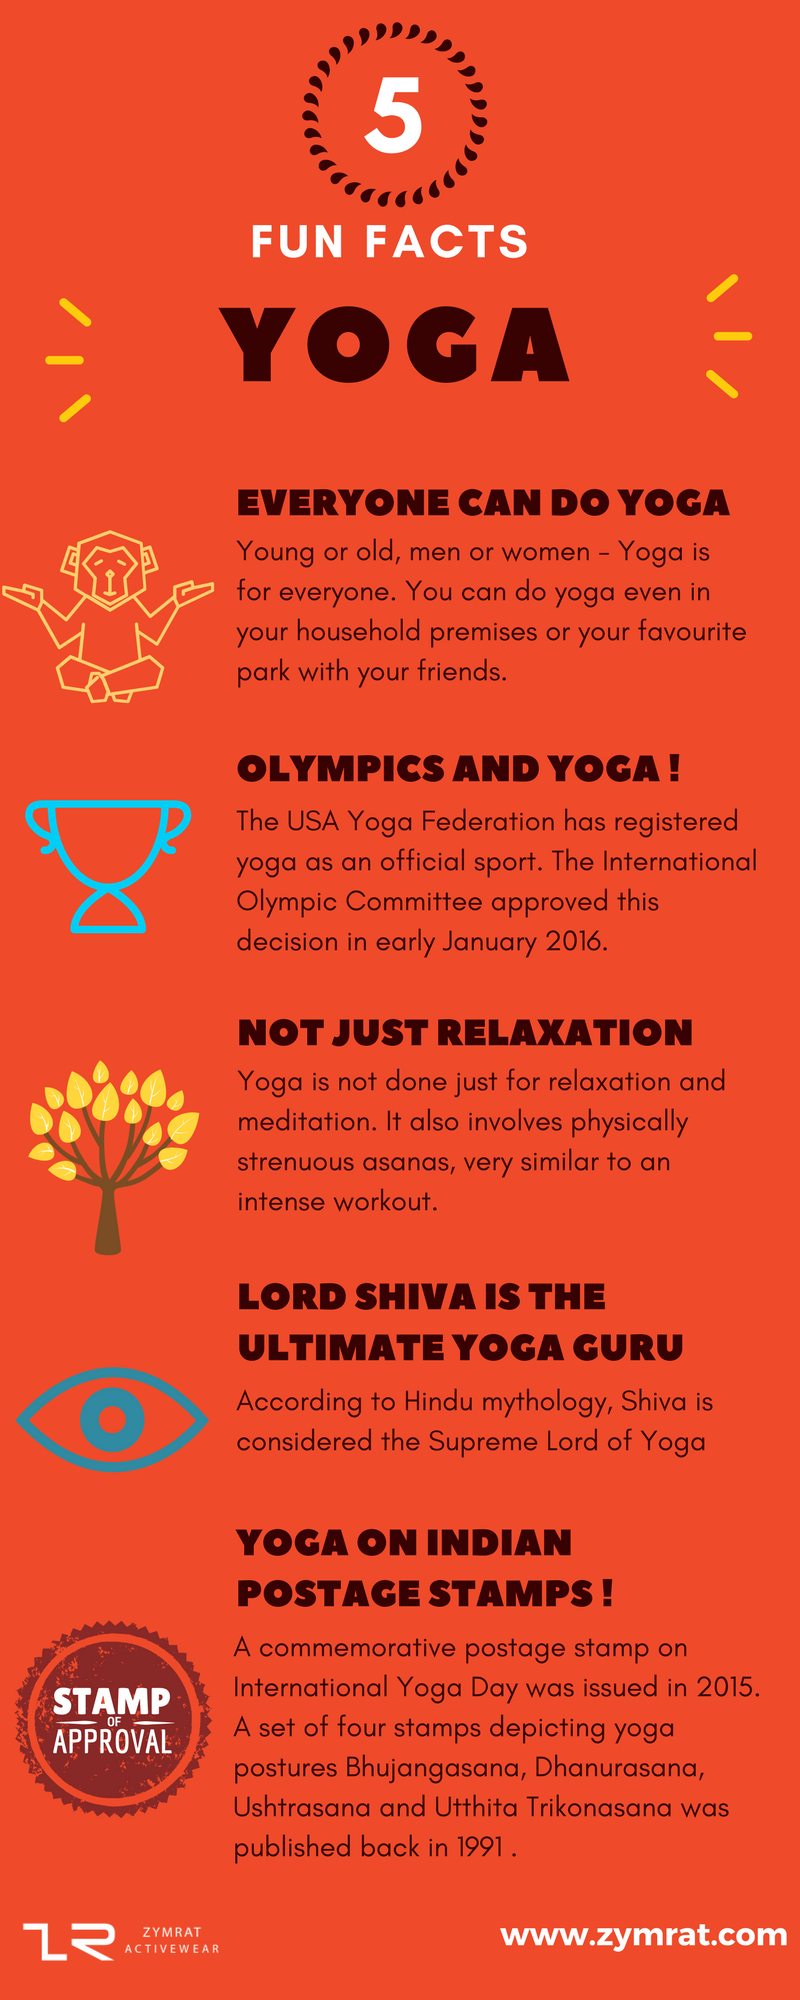 Fun facts about Yoga on Yoga Day